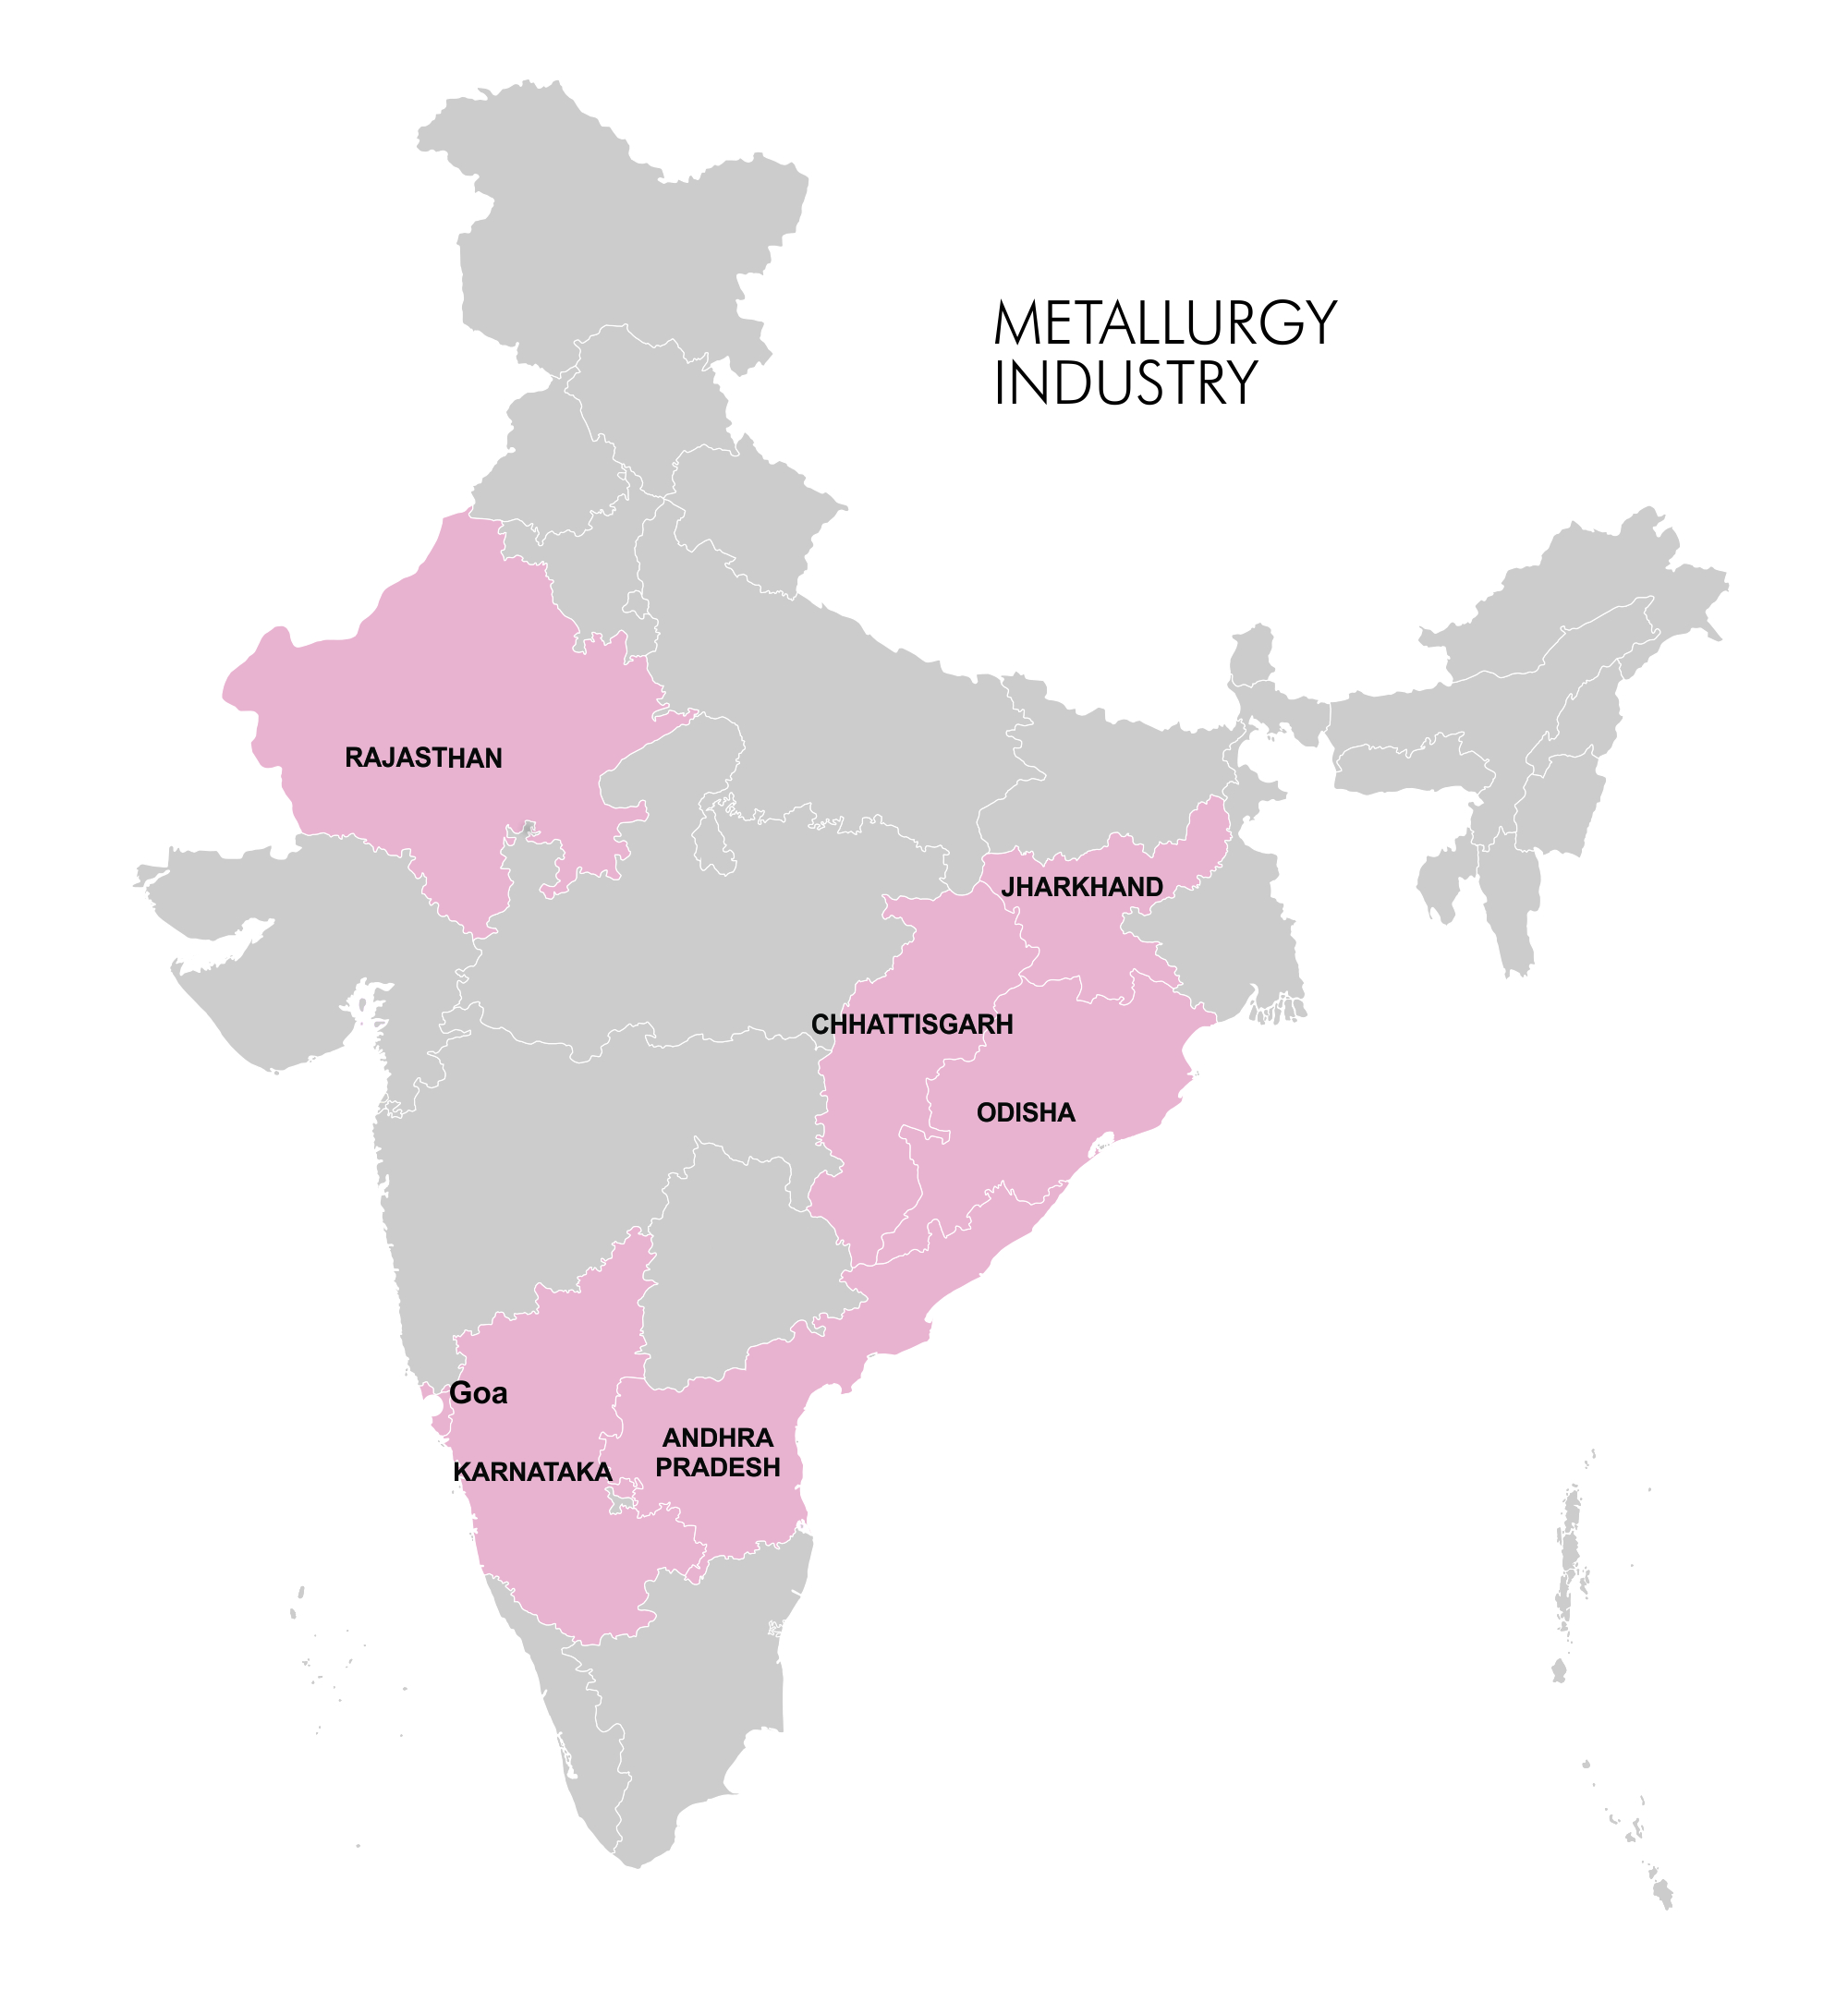 Map - Industry Clusters: Metallurgy